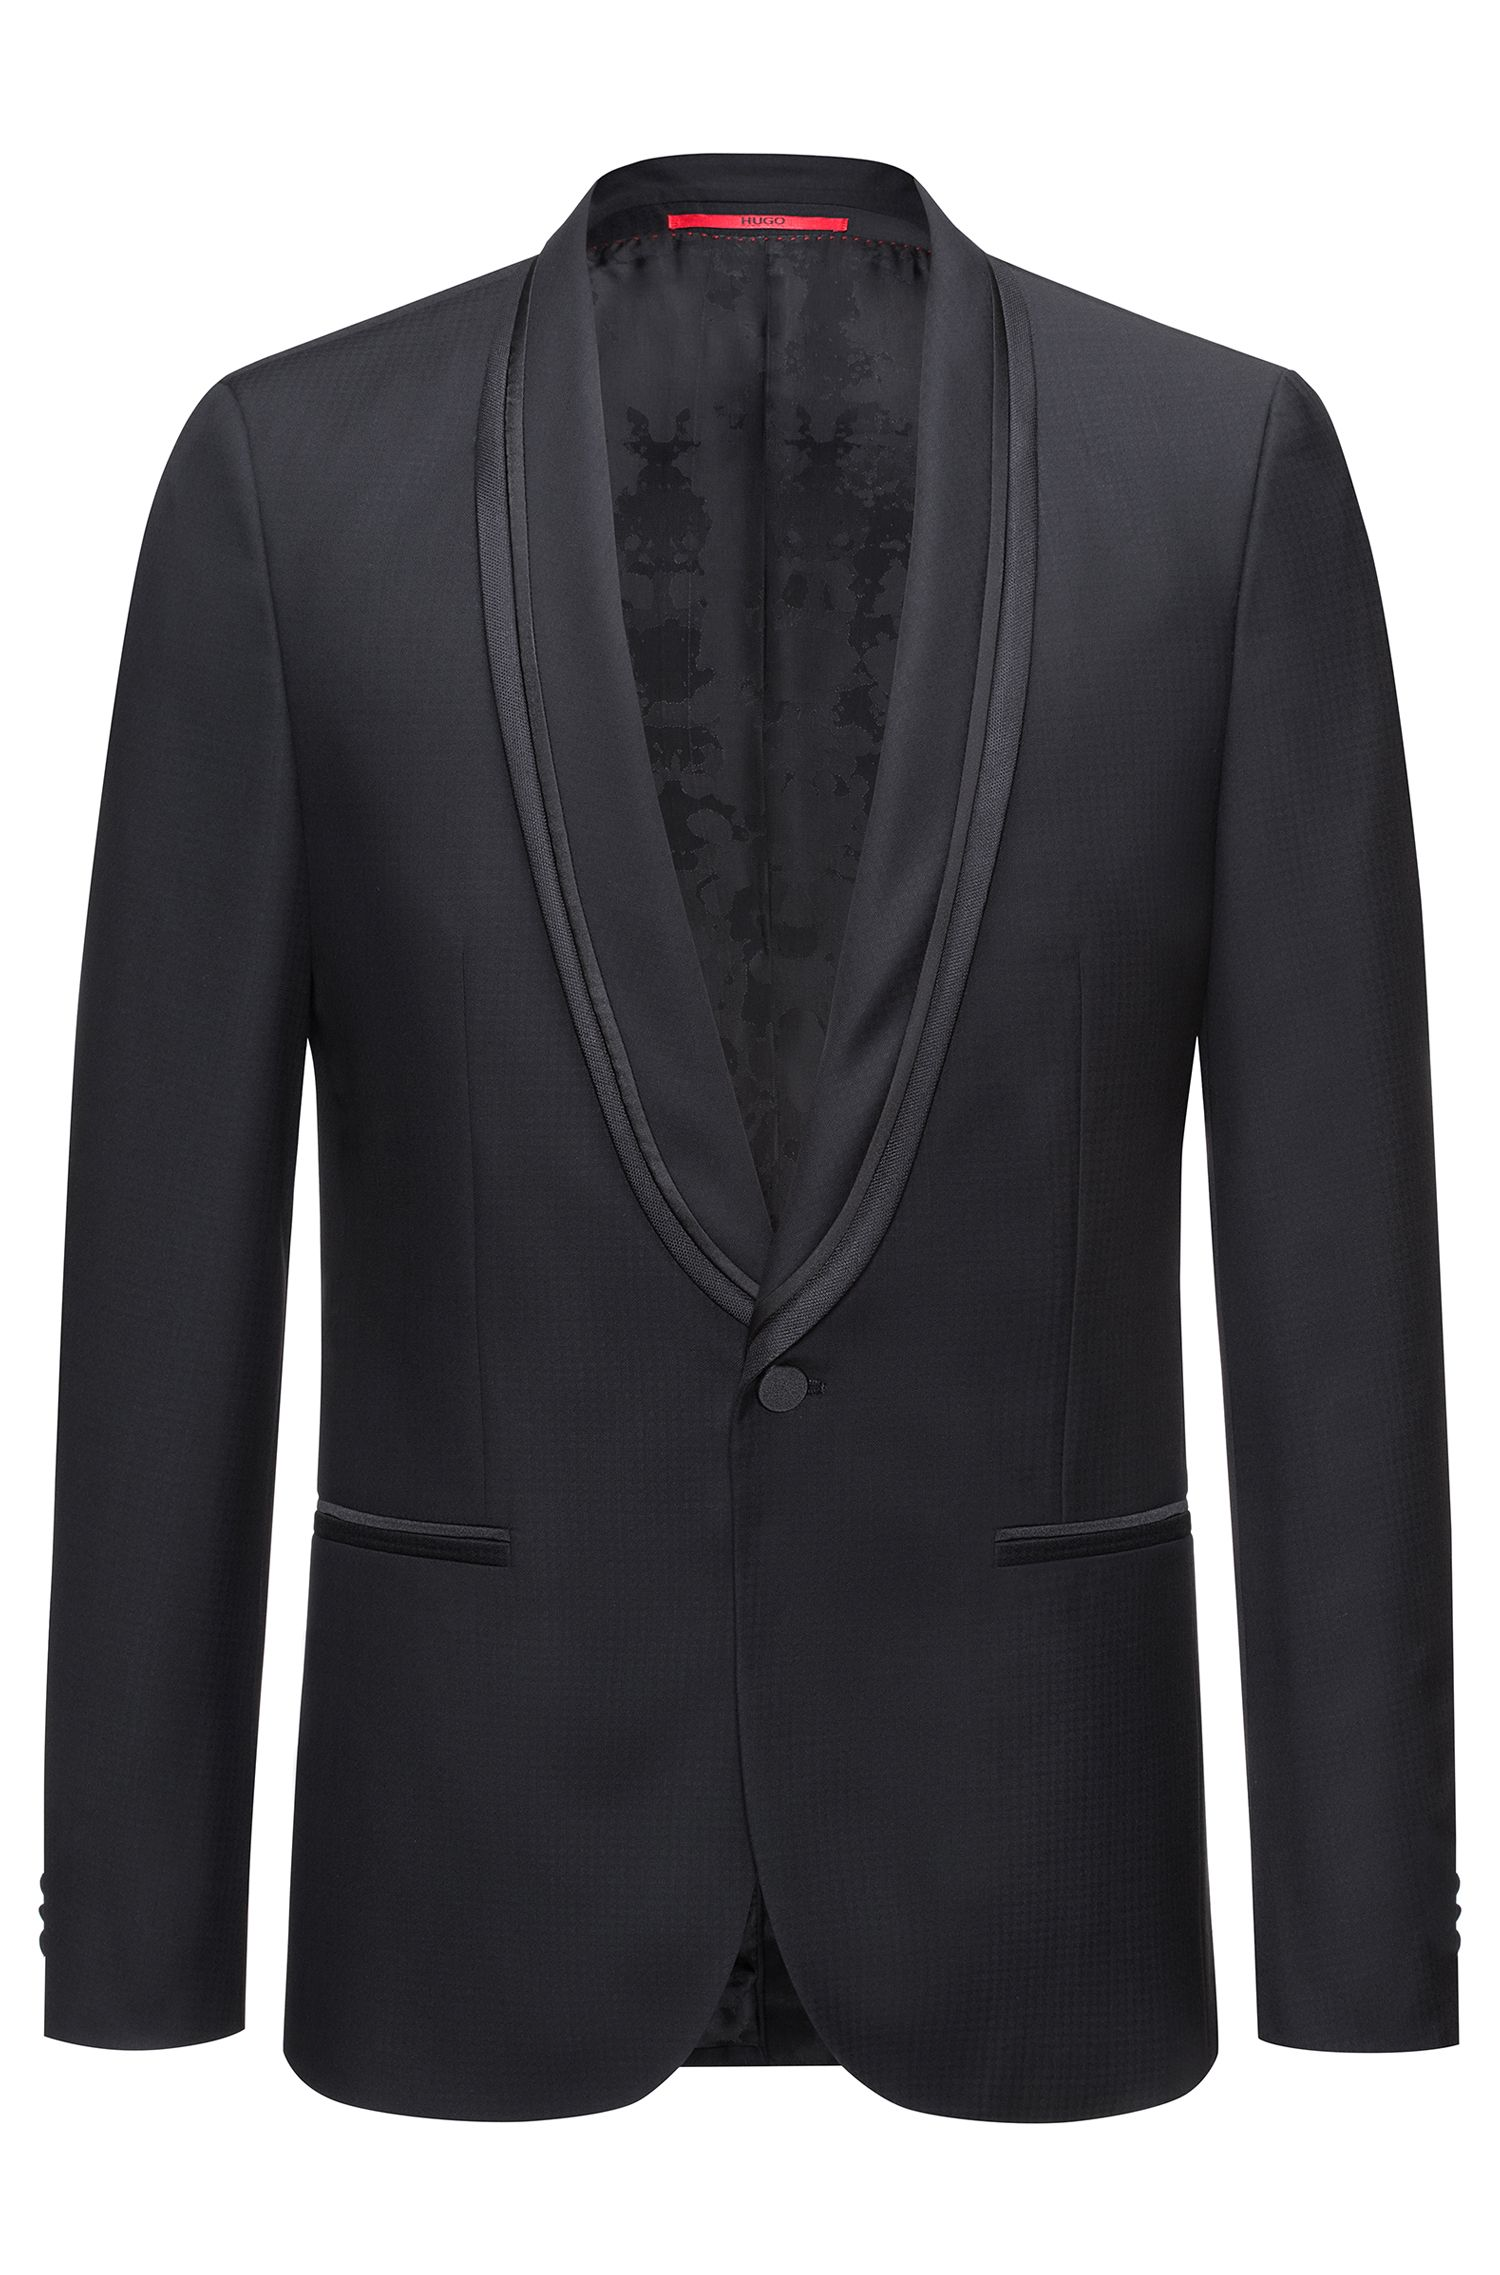 Extra-slim-fit jacket in a wool blend